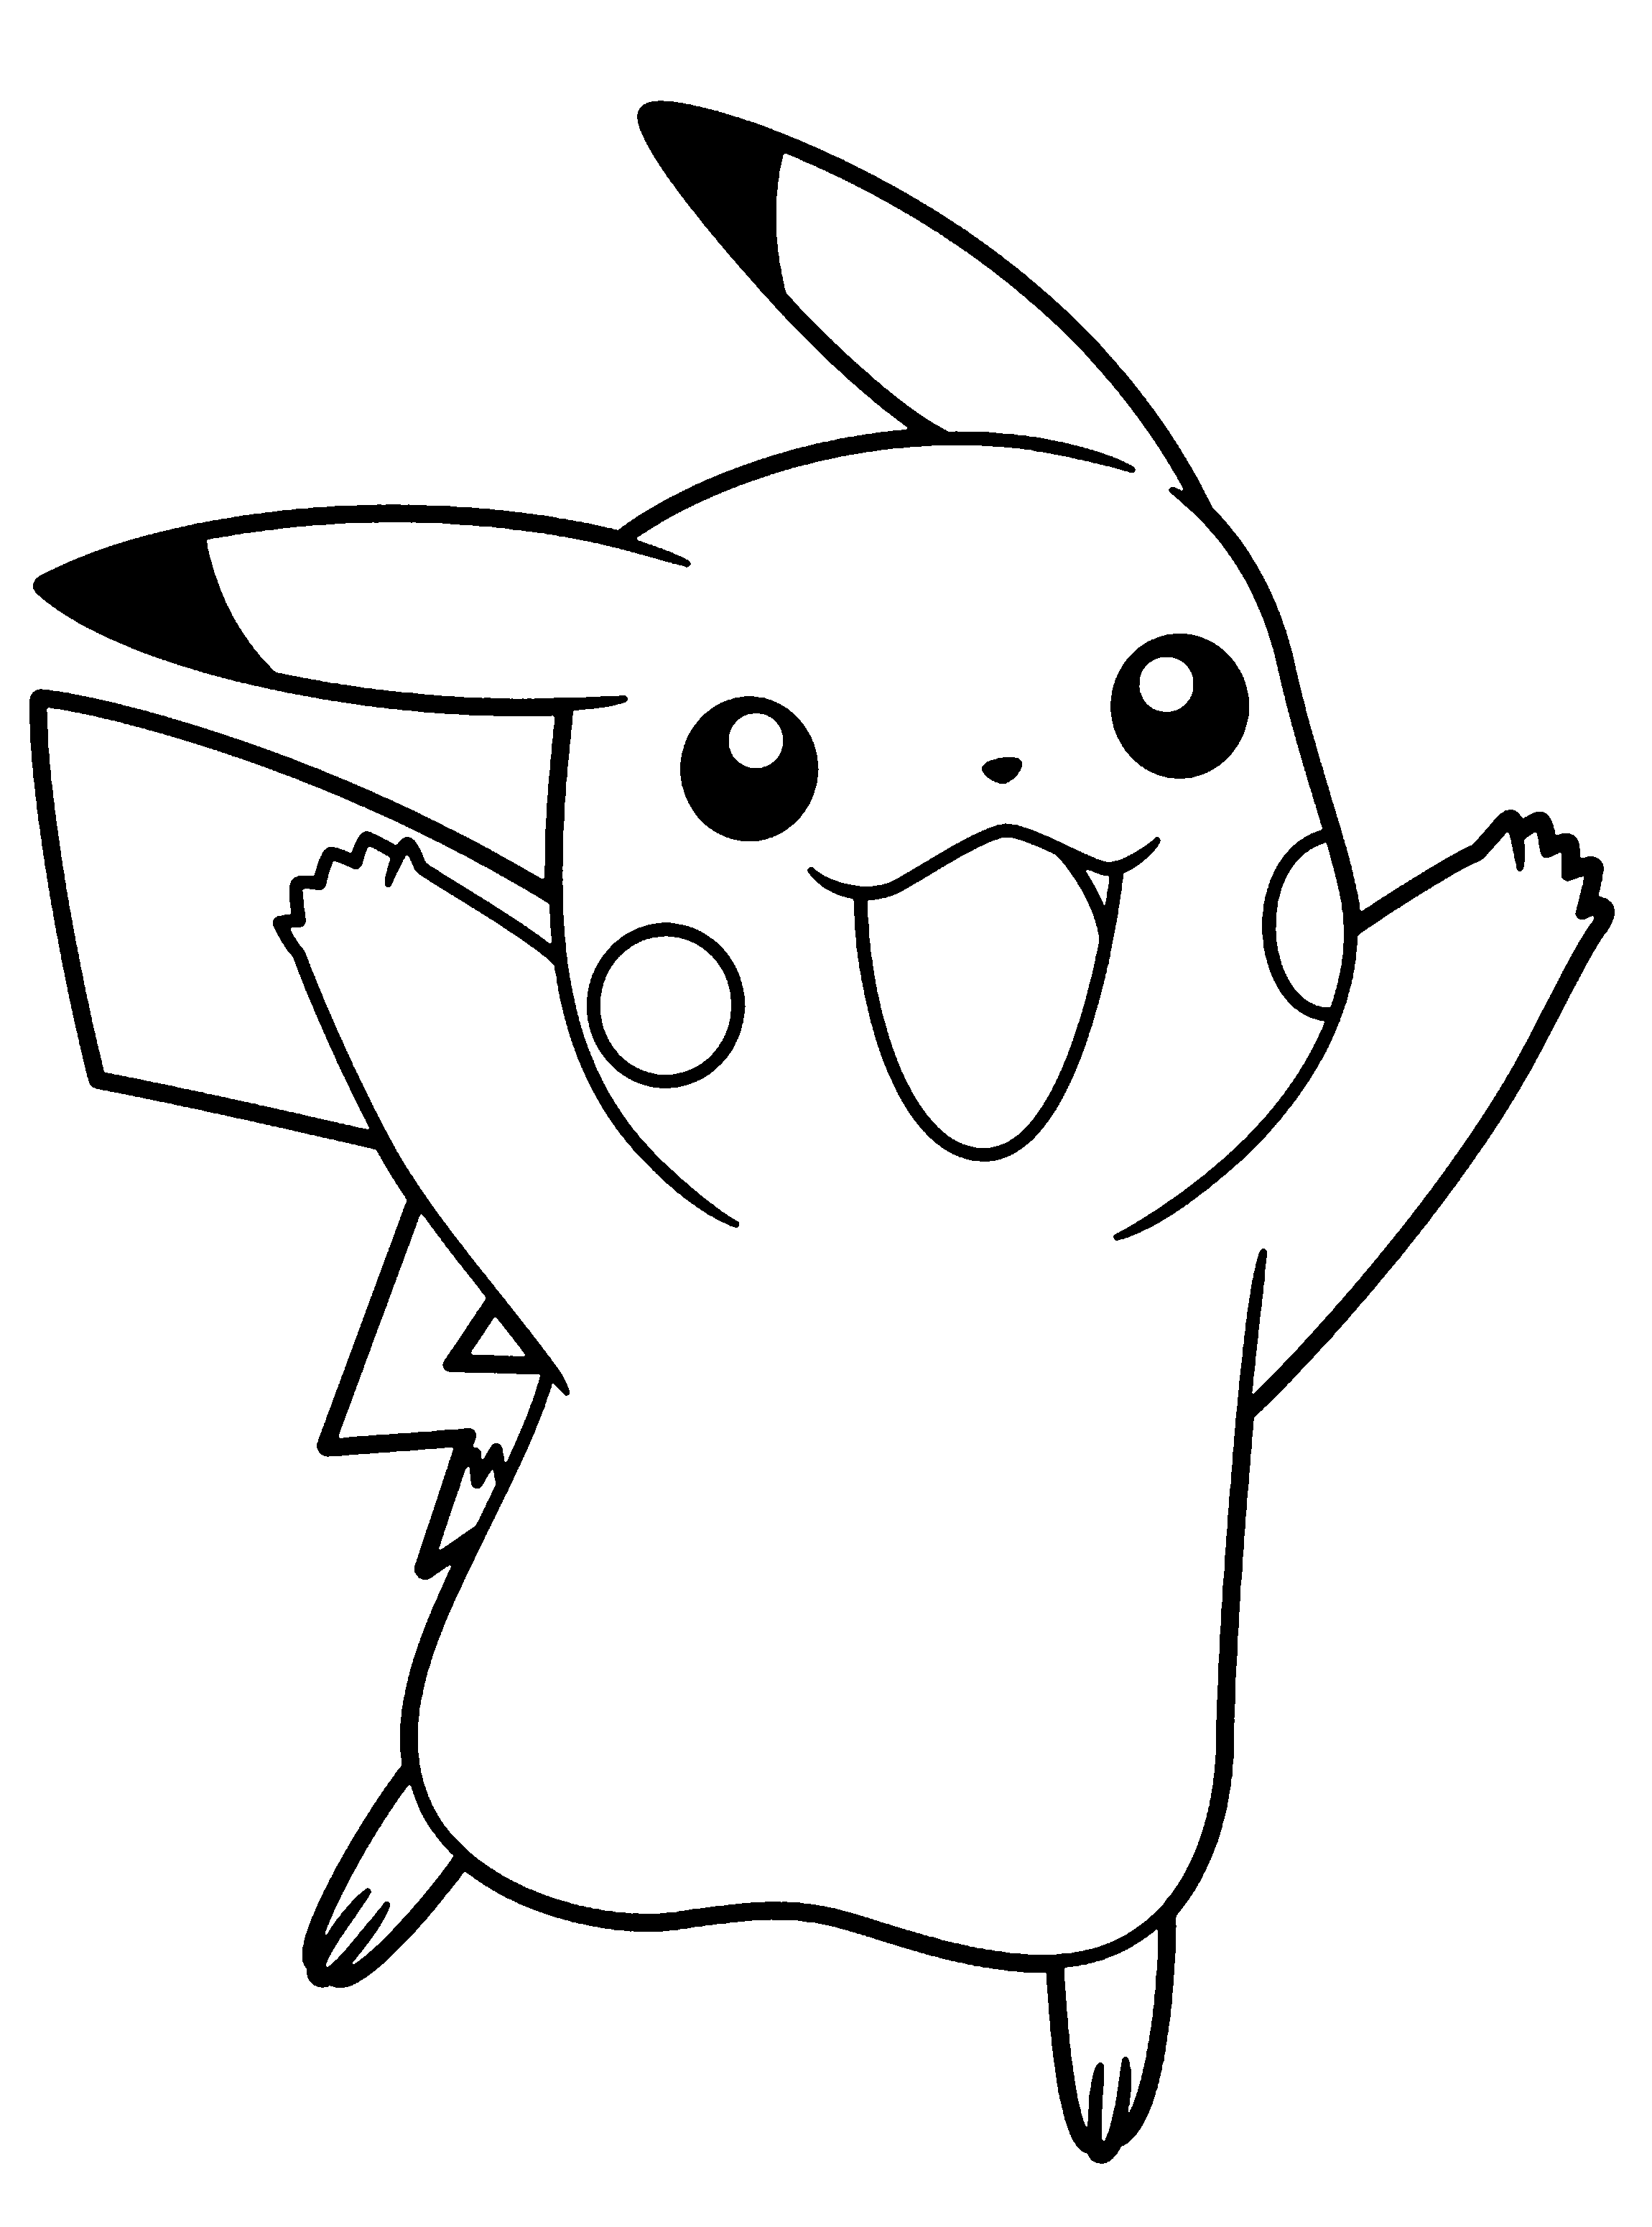 Pikachu Coloring Pages To Print Pikachu Coloring Page Pokemon Coloring Pages Pokemon Coloring